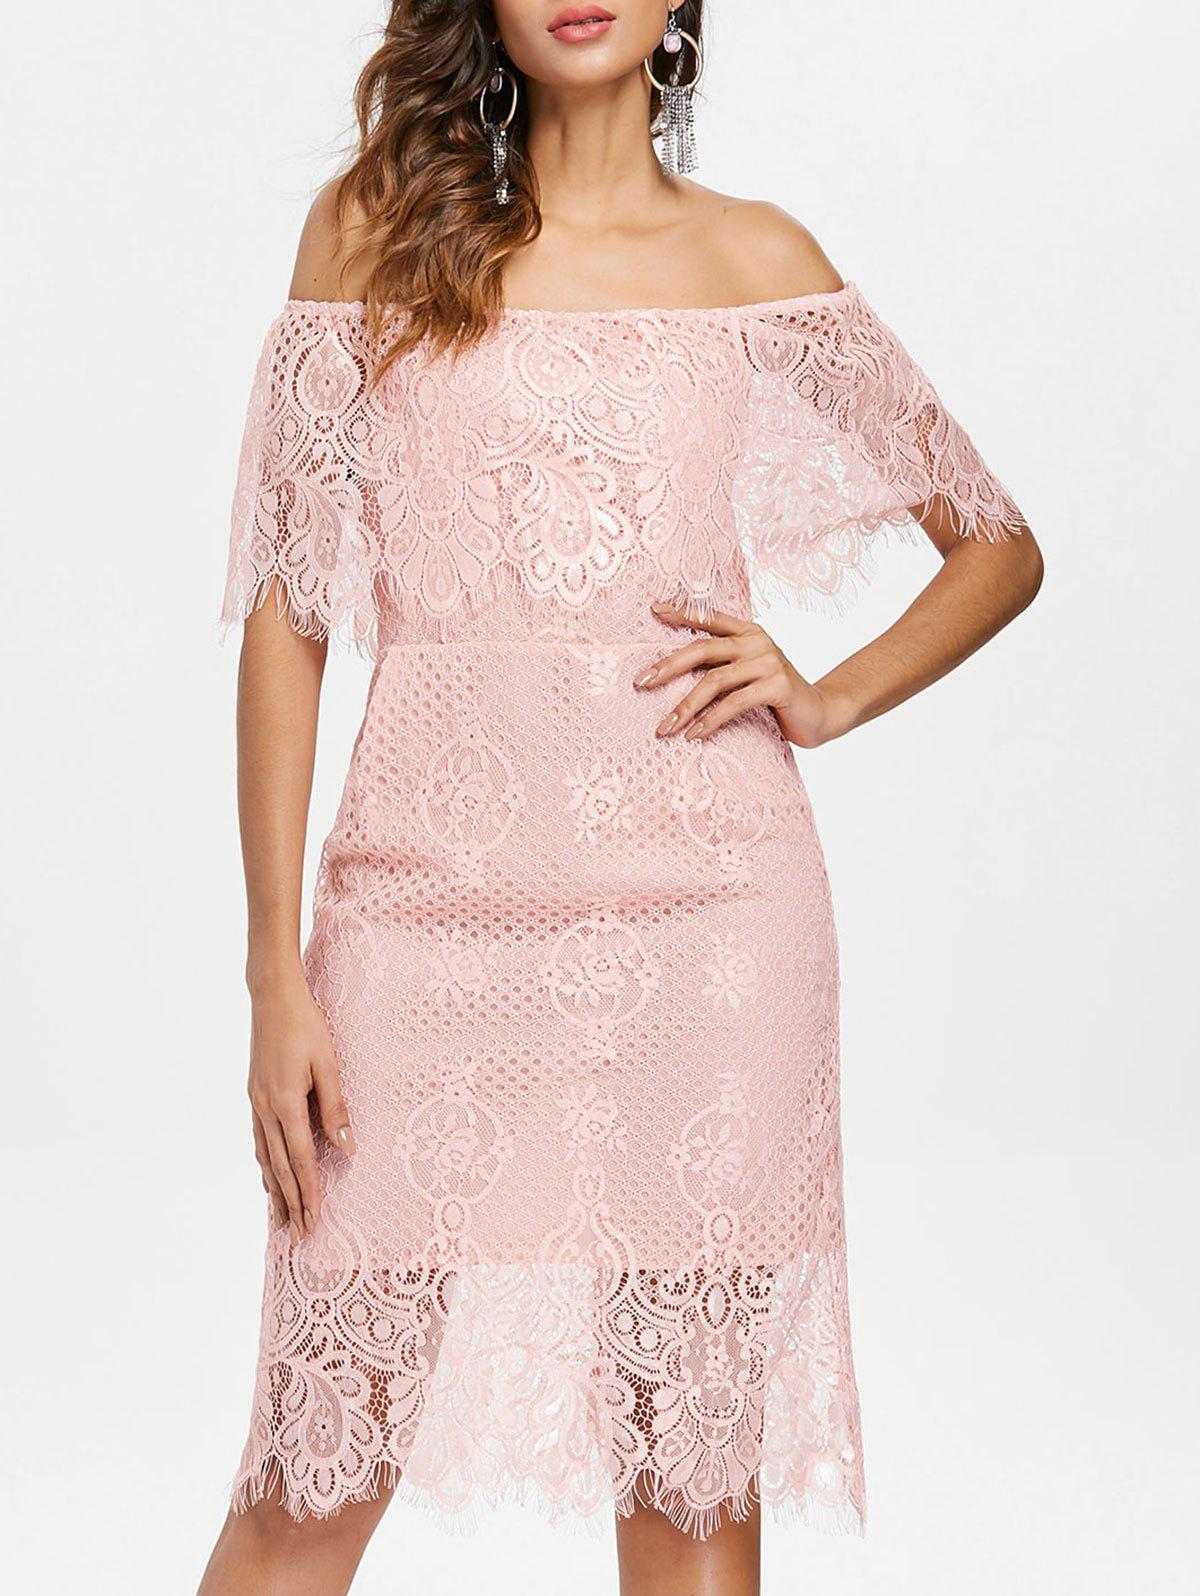 Fancy Off Shoulder Lace Party Dress